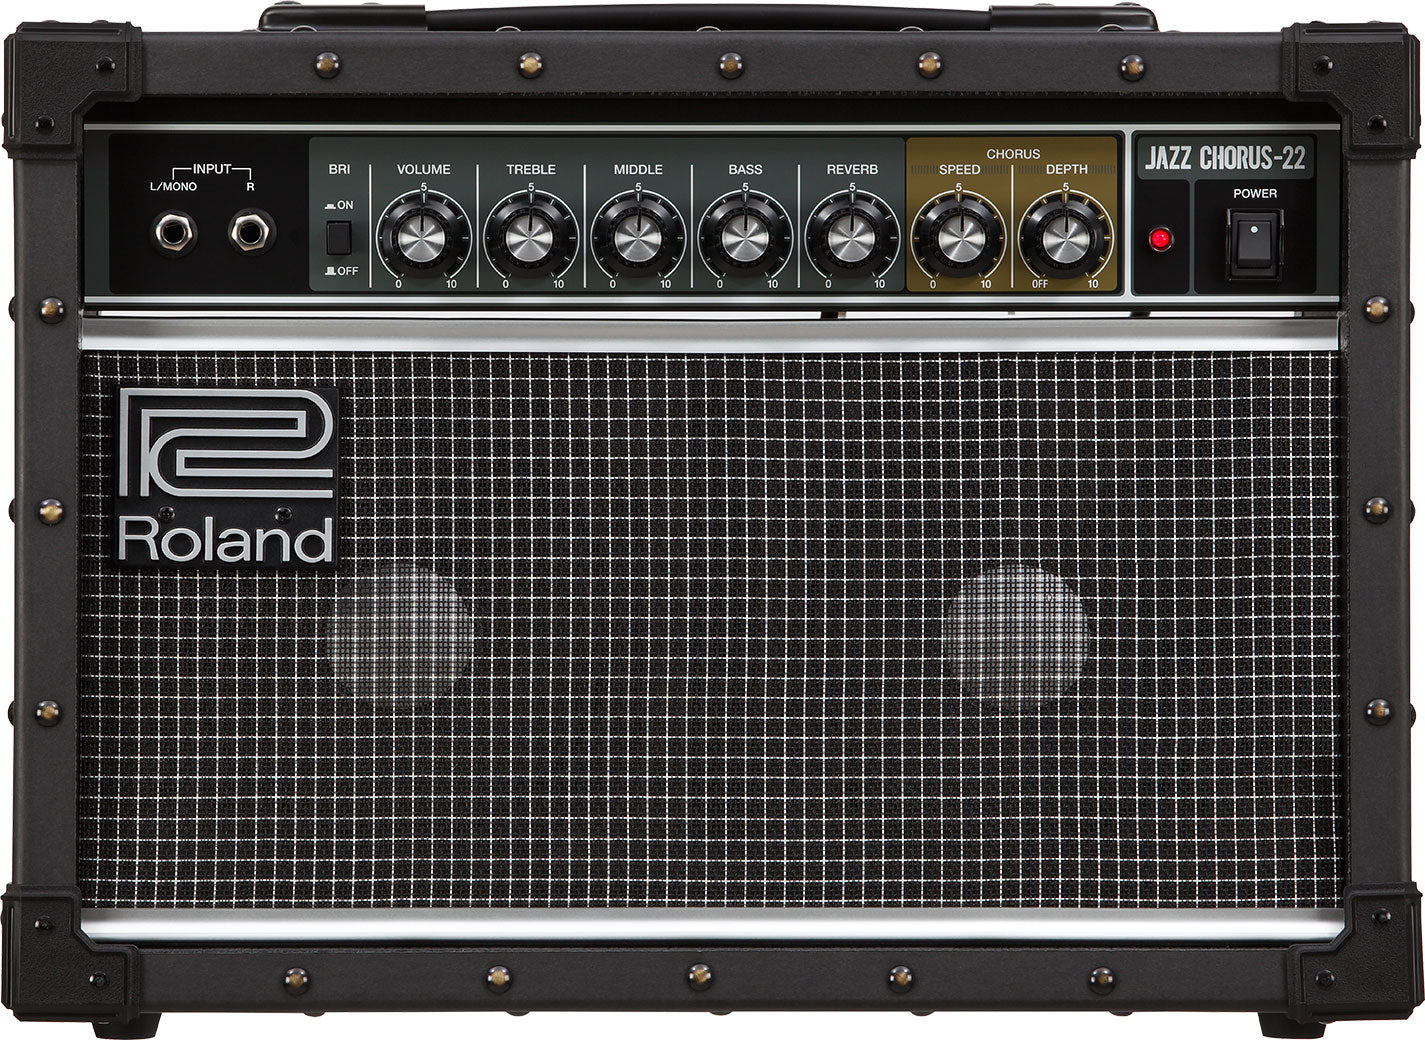 Shop online for Roland JC-22 Guitar Amplifier today.  Now available for purchase from Midlothian Music of Orland Park, Illinois, USA